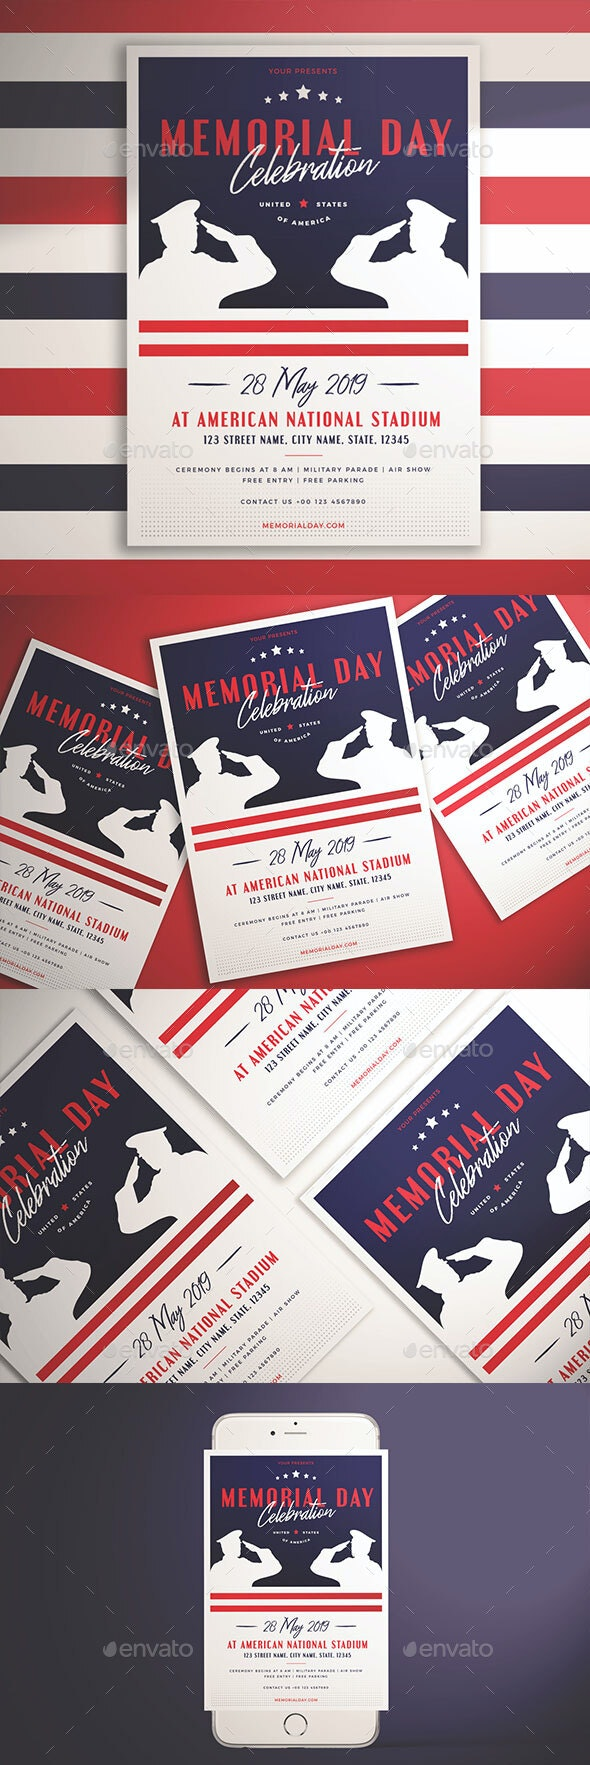 Memorial Day Celebration Flyer - Holidays Events